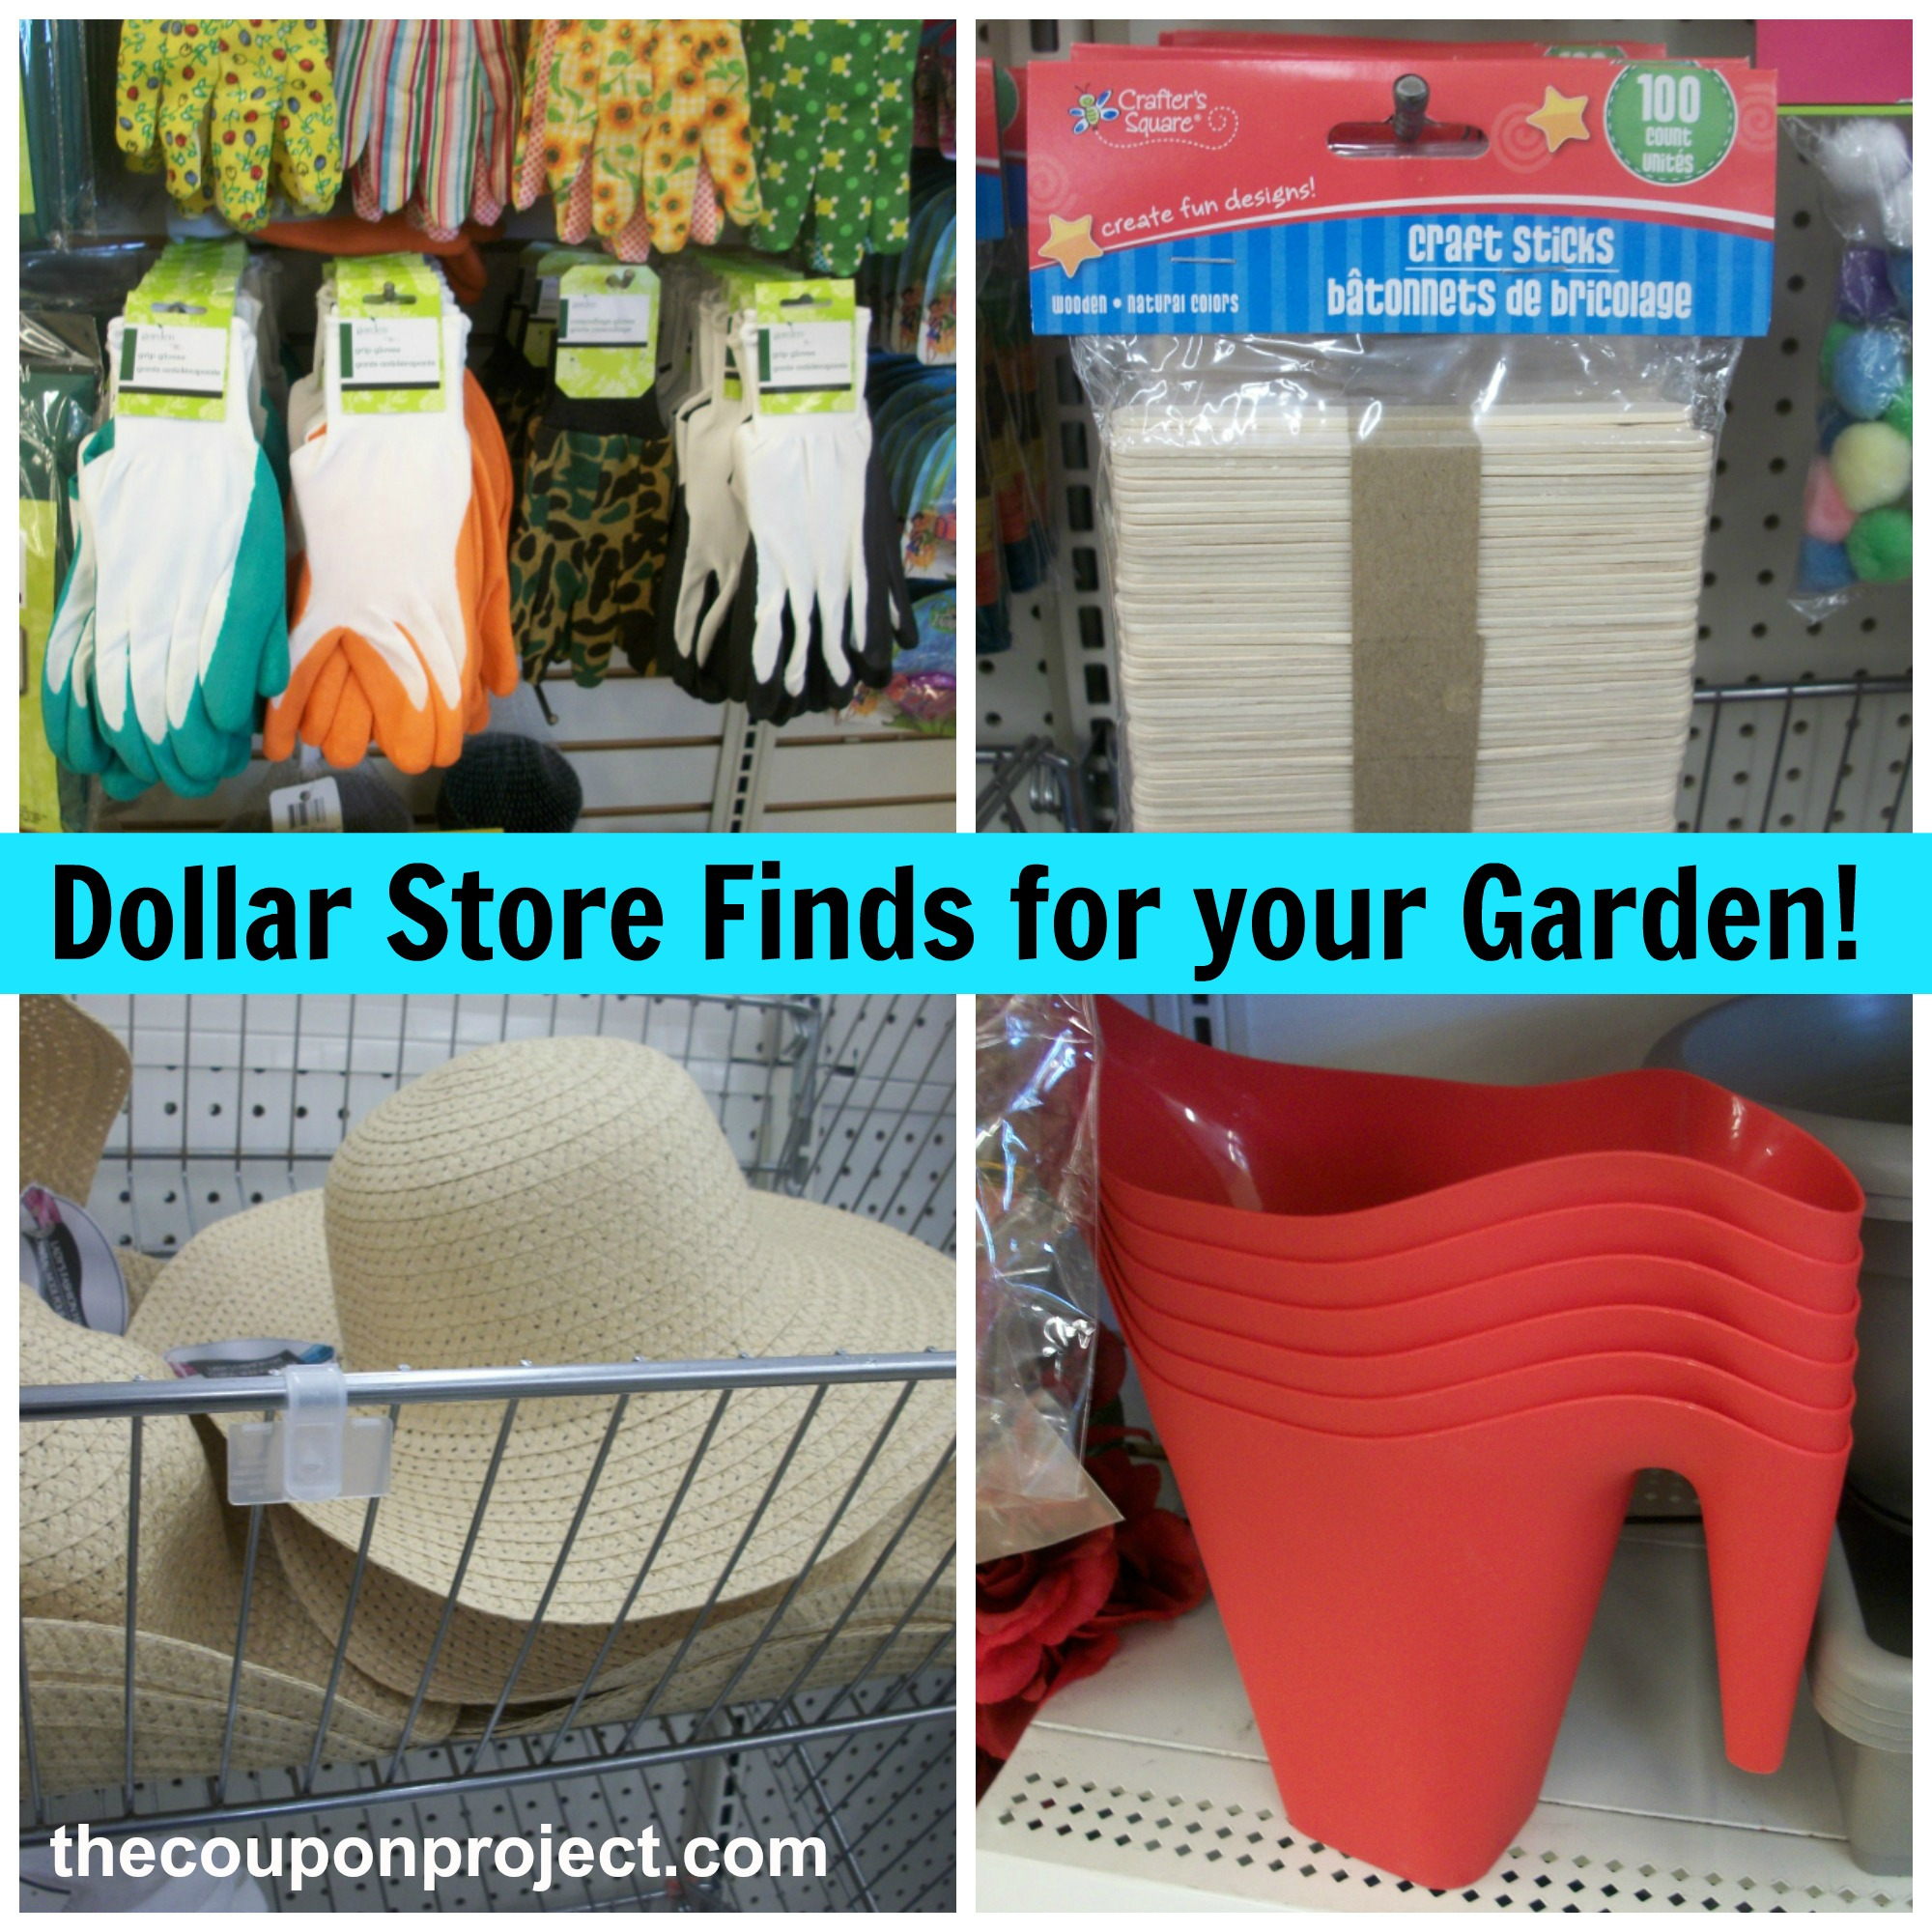 Dollar Store Finds for your Garden | The Coupon Project